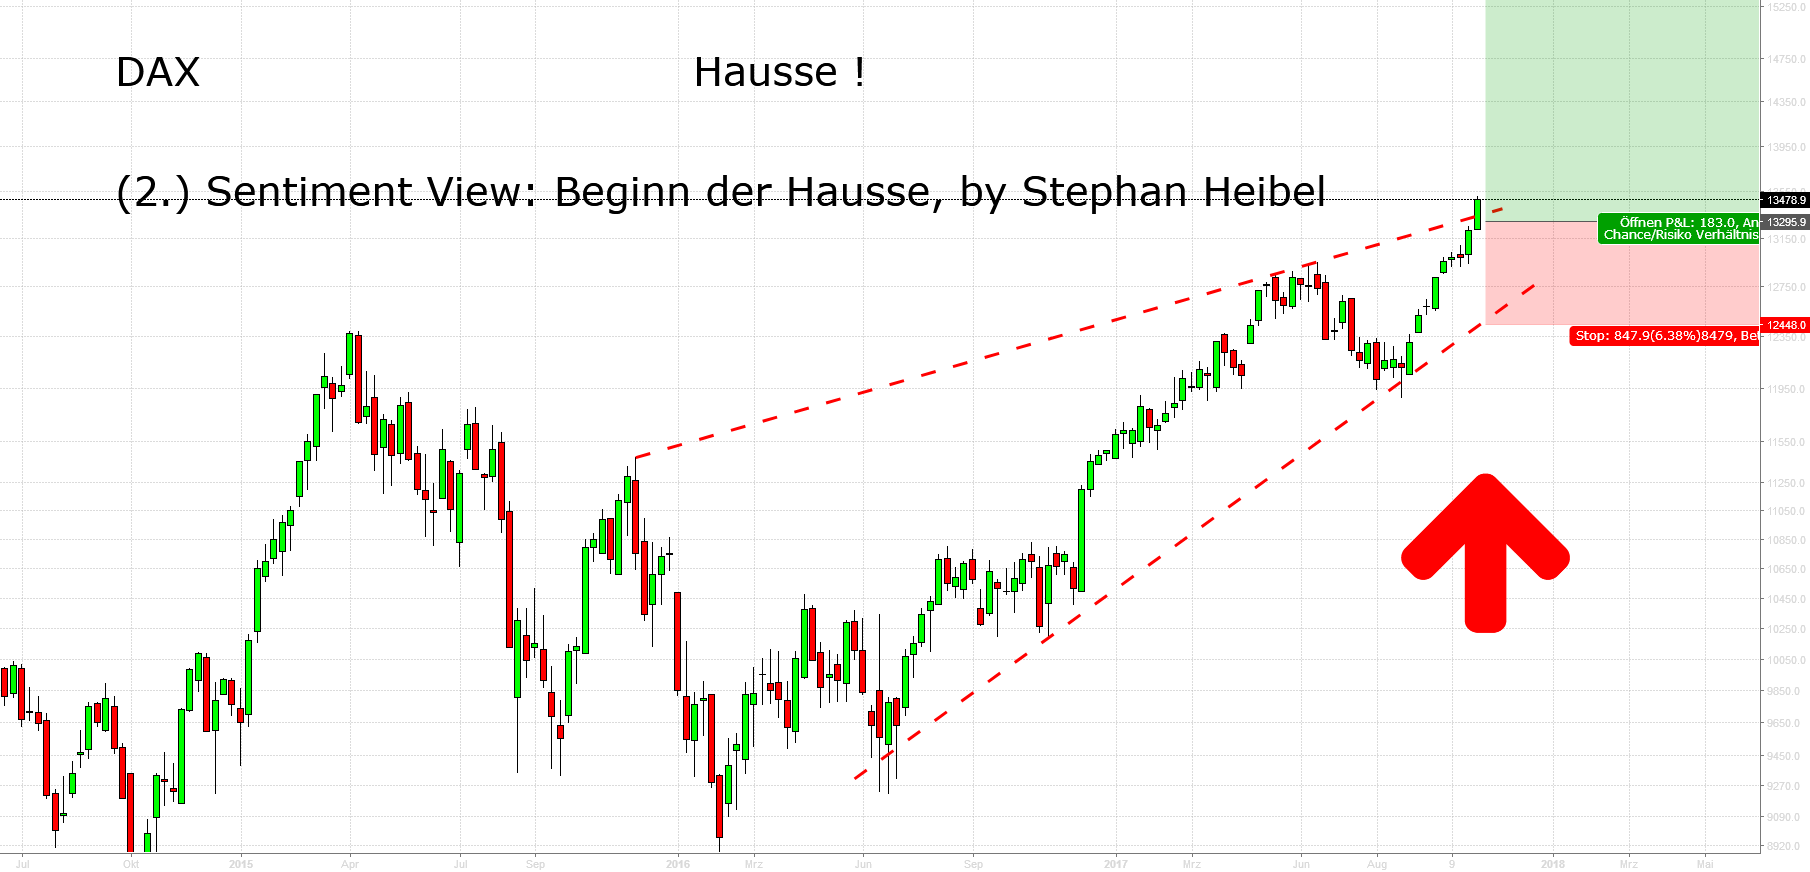 DAX: Hausse ! (2) Sentimentview, by Stephan Heibel